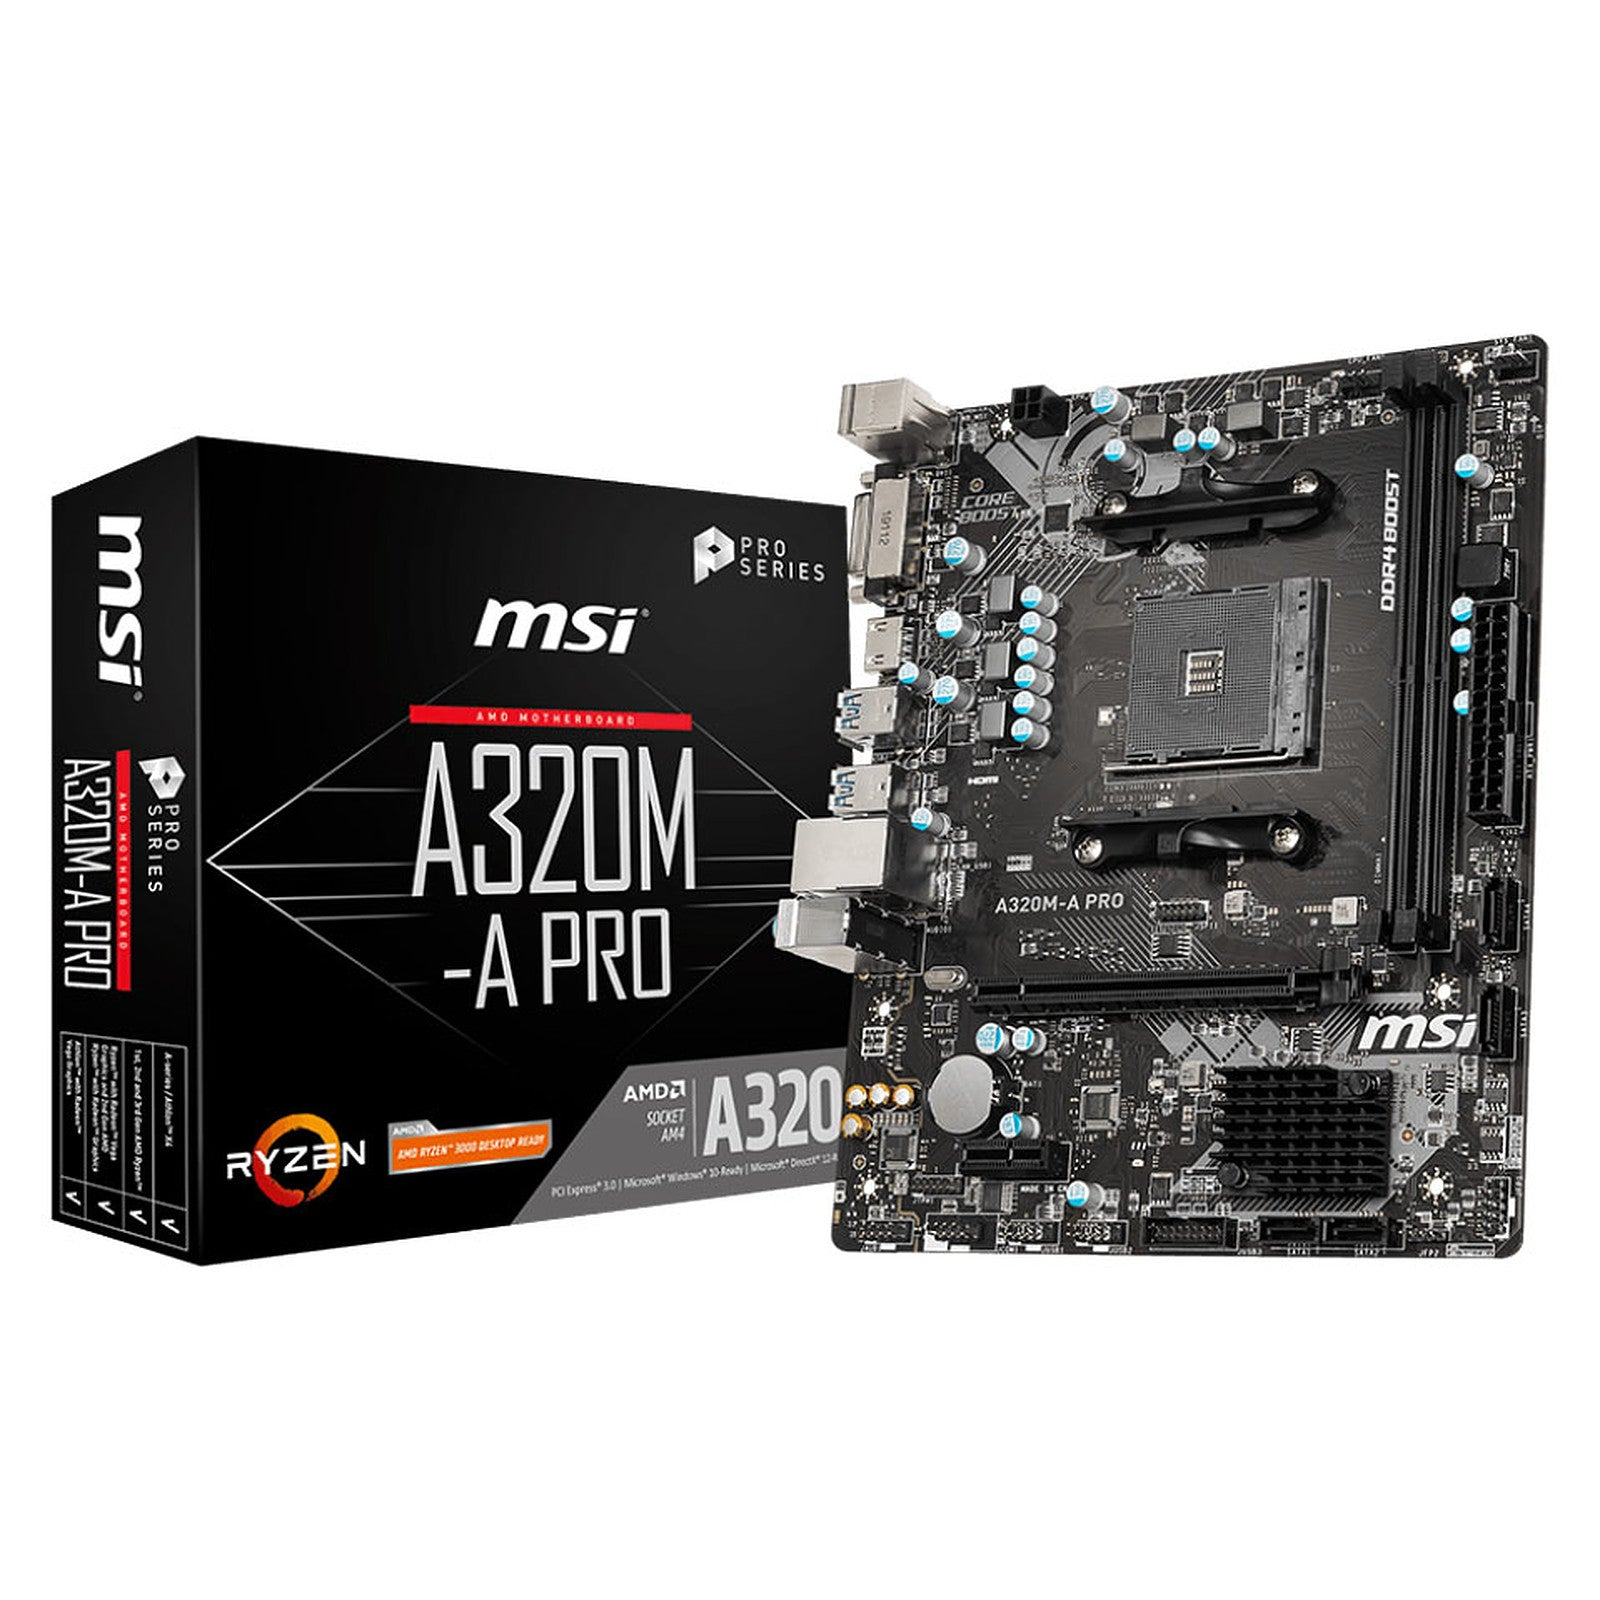 MSI A320M-A PRO - Carte mère Micro ATX Socket AM4 AMD A320 - 2x DDR4 - SATA 6Gb/s - 1x PCI-Express 3.0 16x